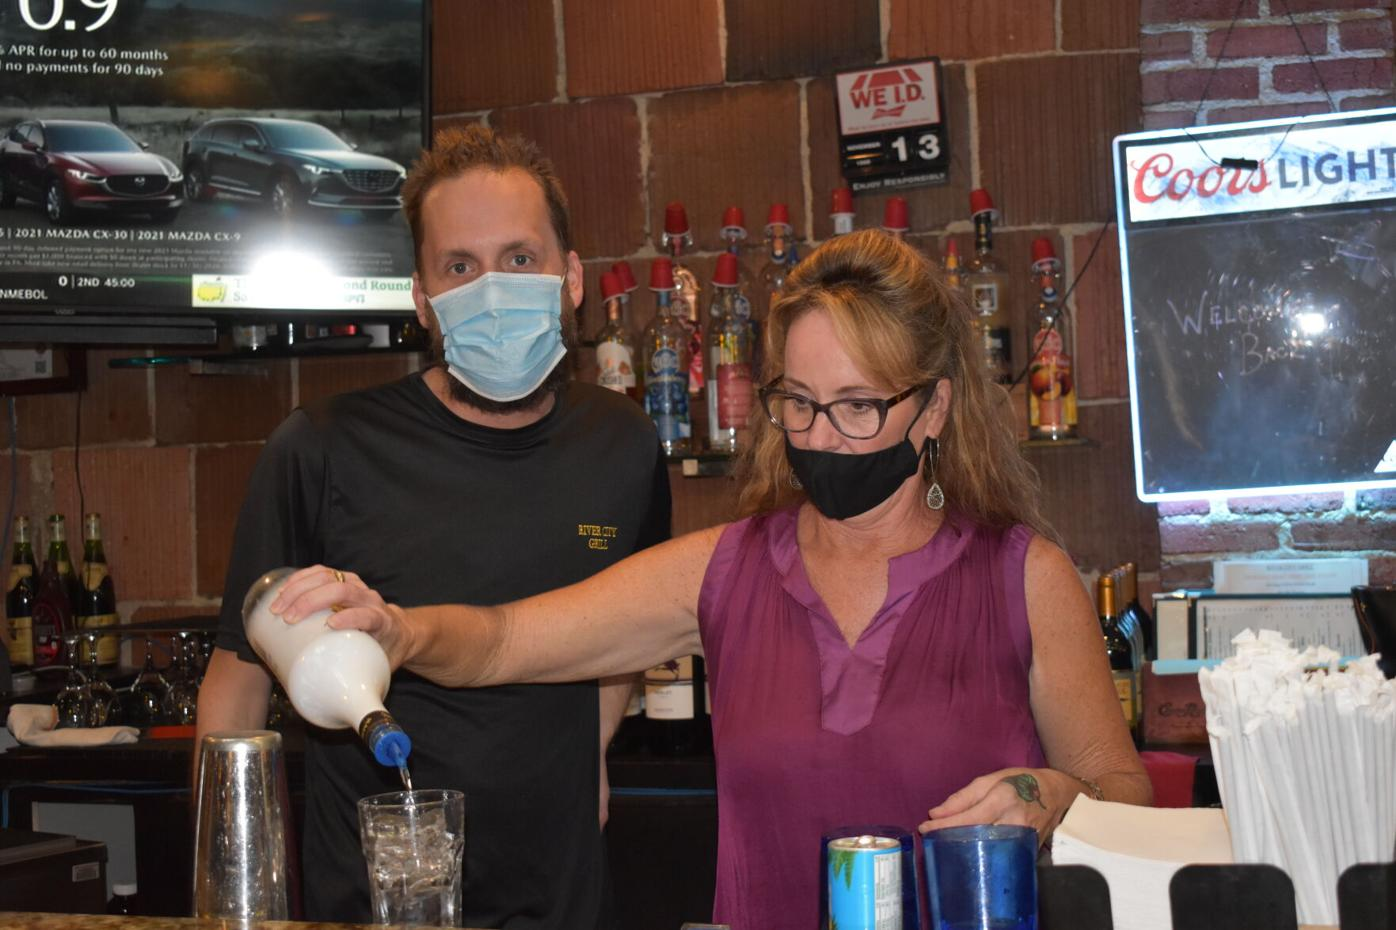 Drew Owens and Amanda Dalton mix drinks at River City Grill